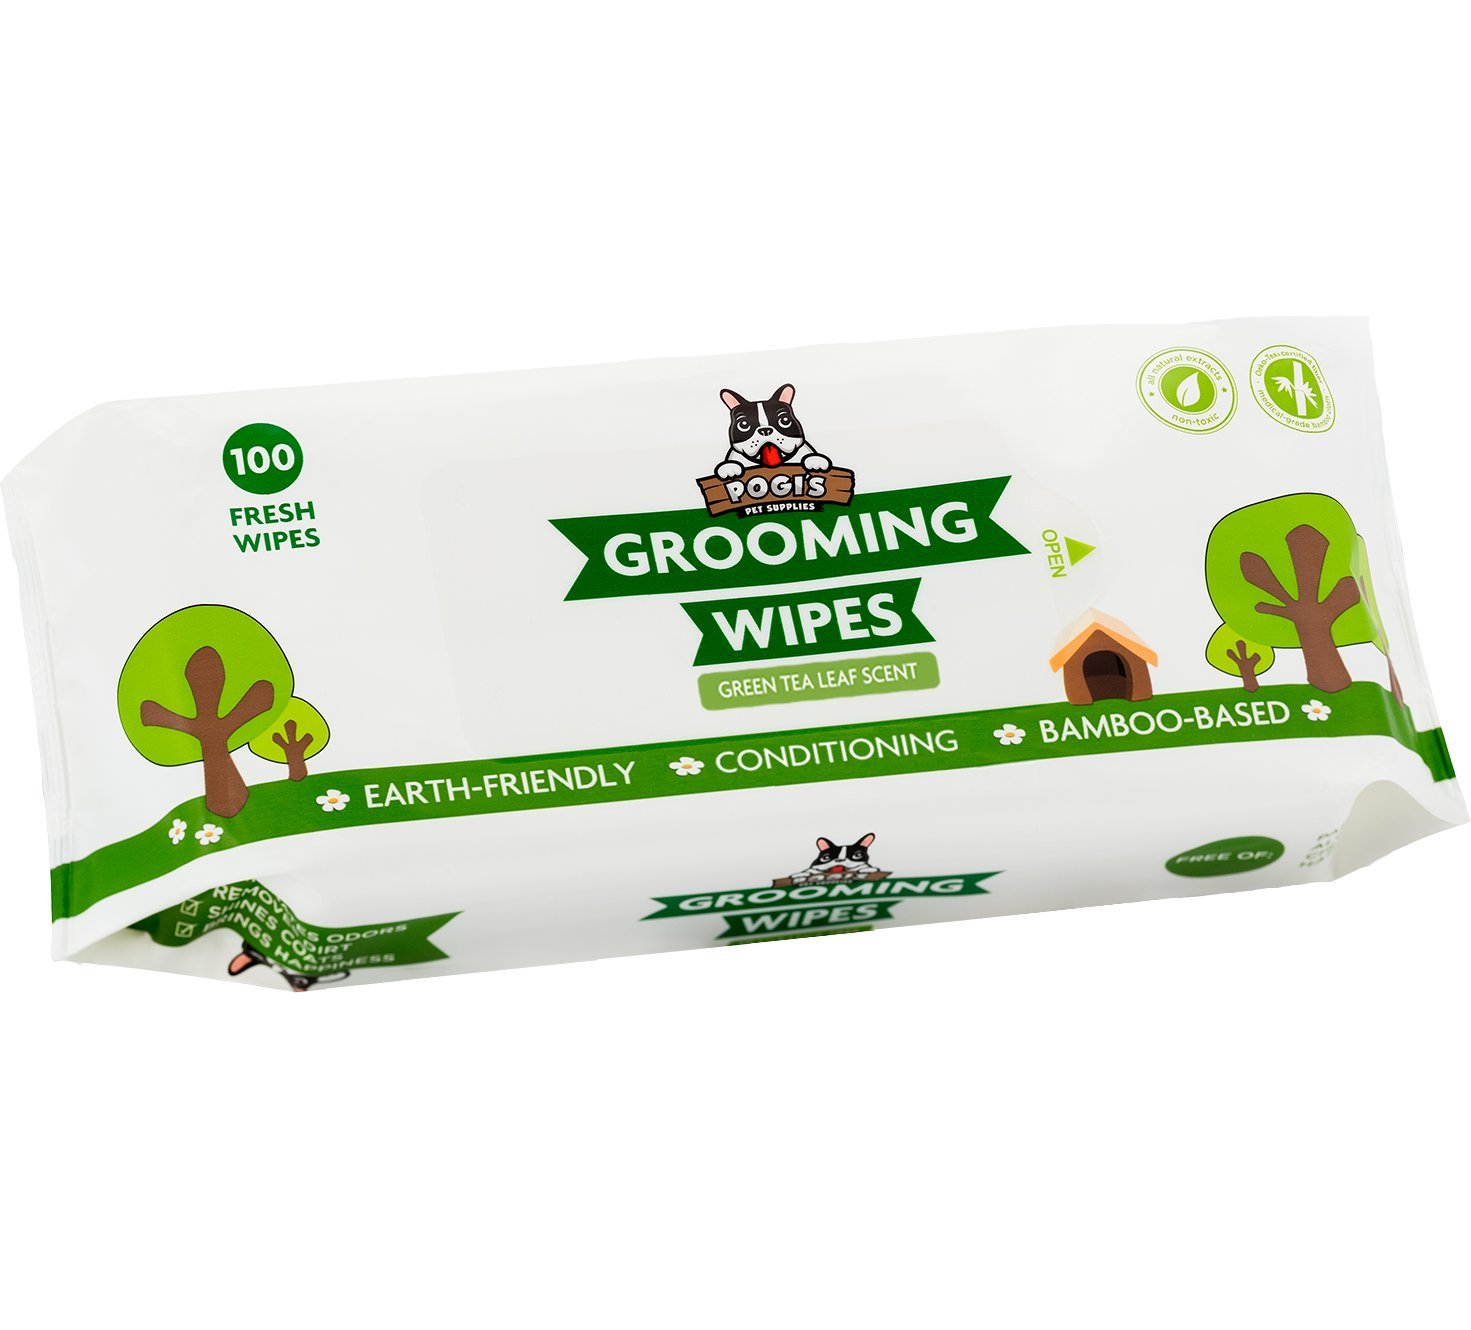 Pogi's Grooming Wipes - 100 Deodorizing Wipes for Dogs & Cats - Large, Conditioning, Green Tea Leaf Scented